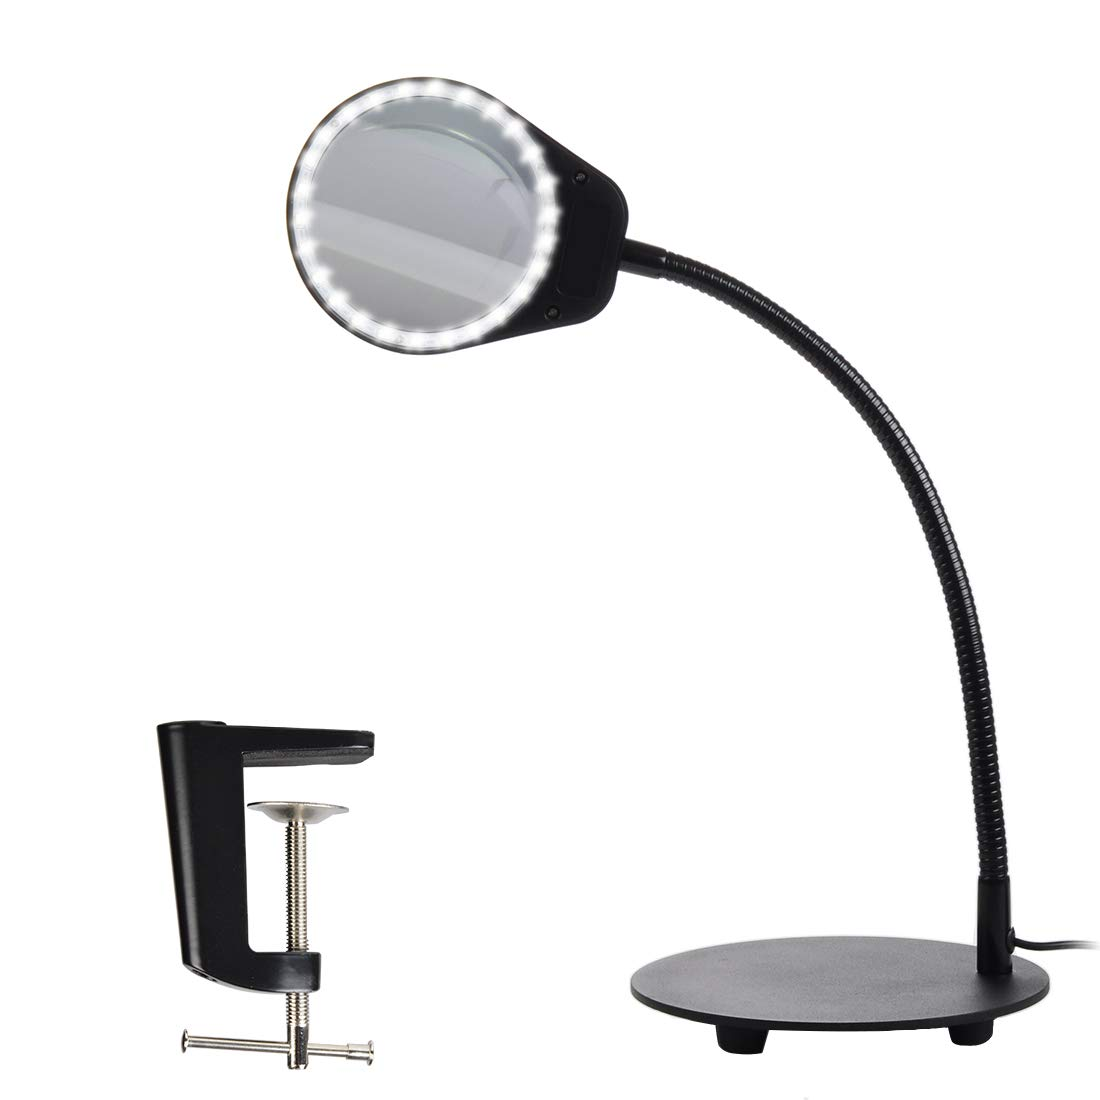 Tomsoo Dimmable 5X Magnifying Lamp - 2 in 1 Magnifier Desk Lamp LED Reading Light With Utility Clamp, Magnifying Glass Lens With Light, Task Lamp for Reading, Crafts, Hobbies, Repair, Workbench, White TS-180523-W